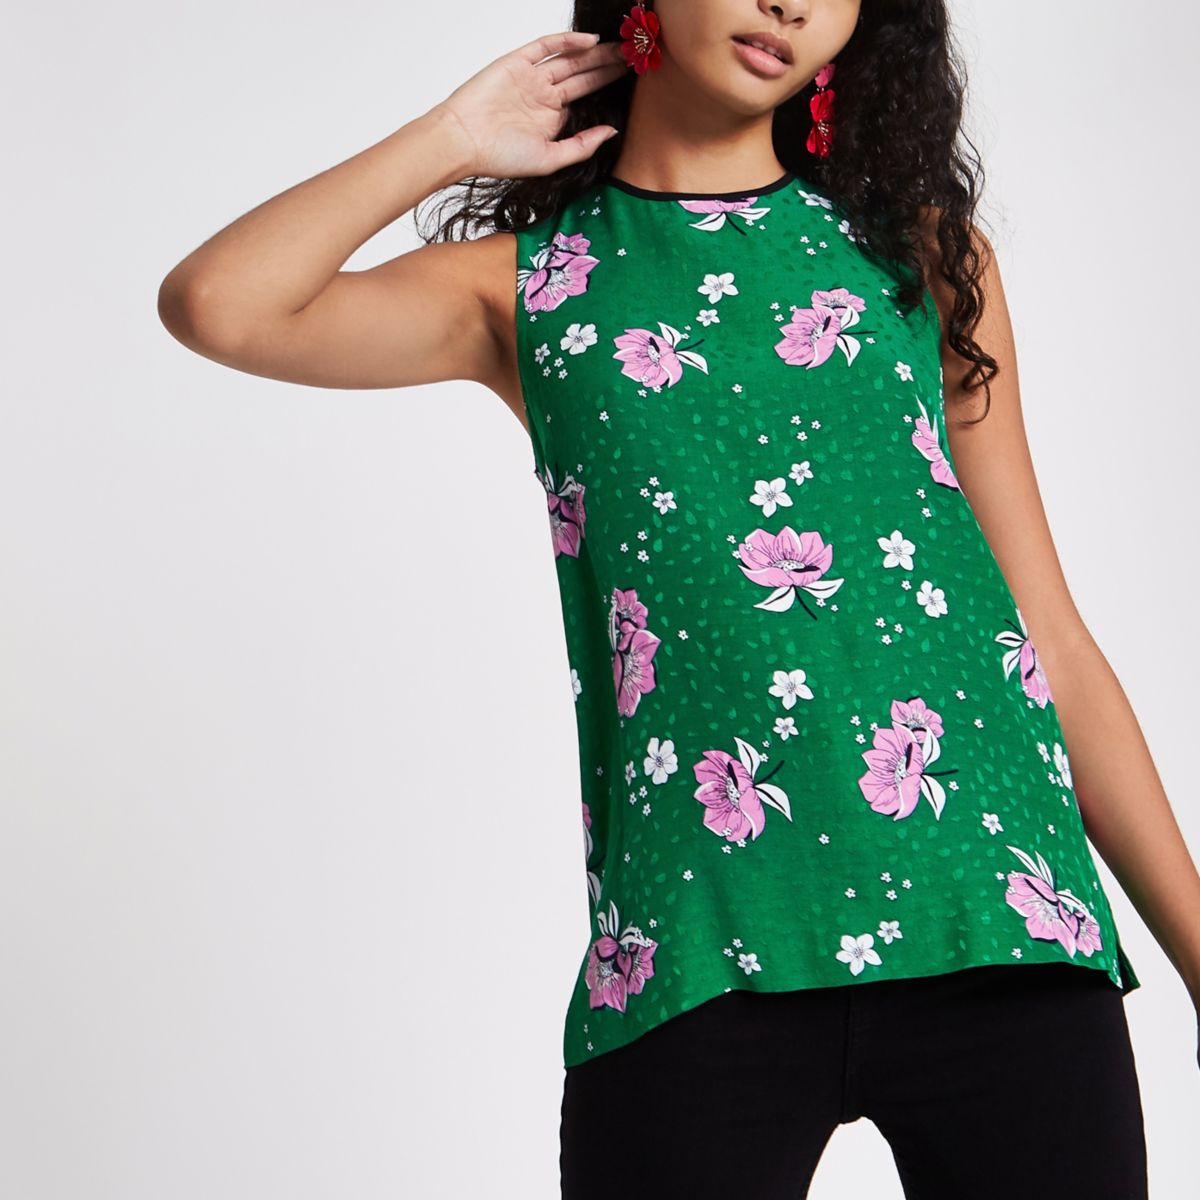 Green floral tank top